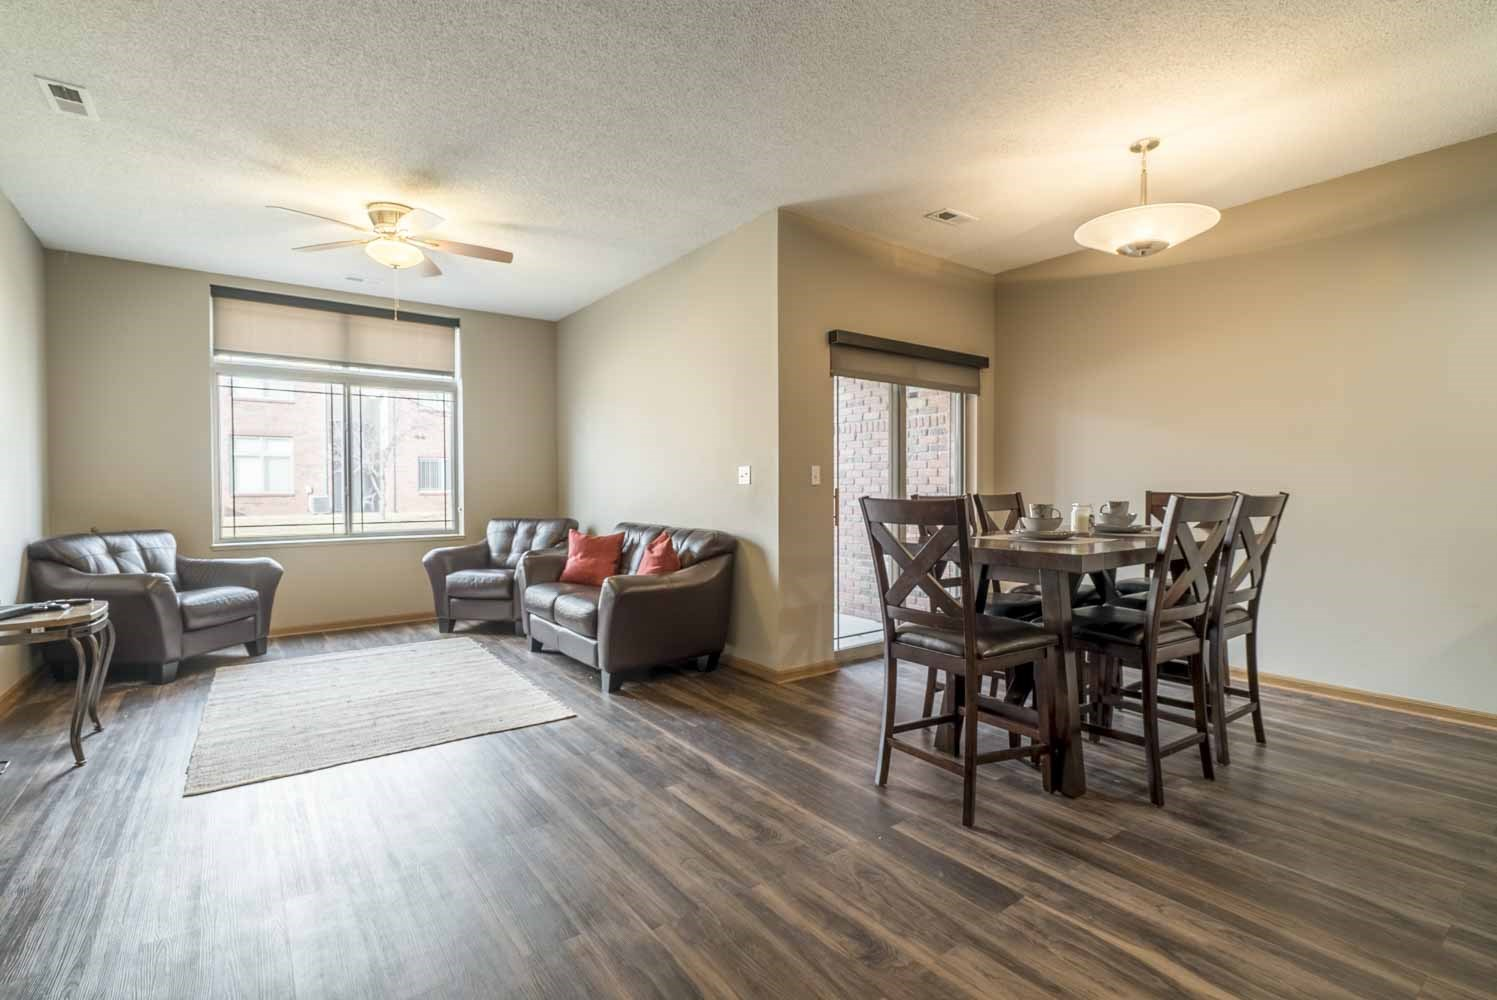 Townhome villa with hardwood-style floors at Southwind Villas in southwest Omaha in La Vista, NE, 68128